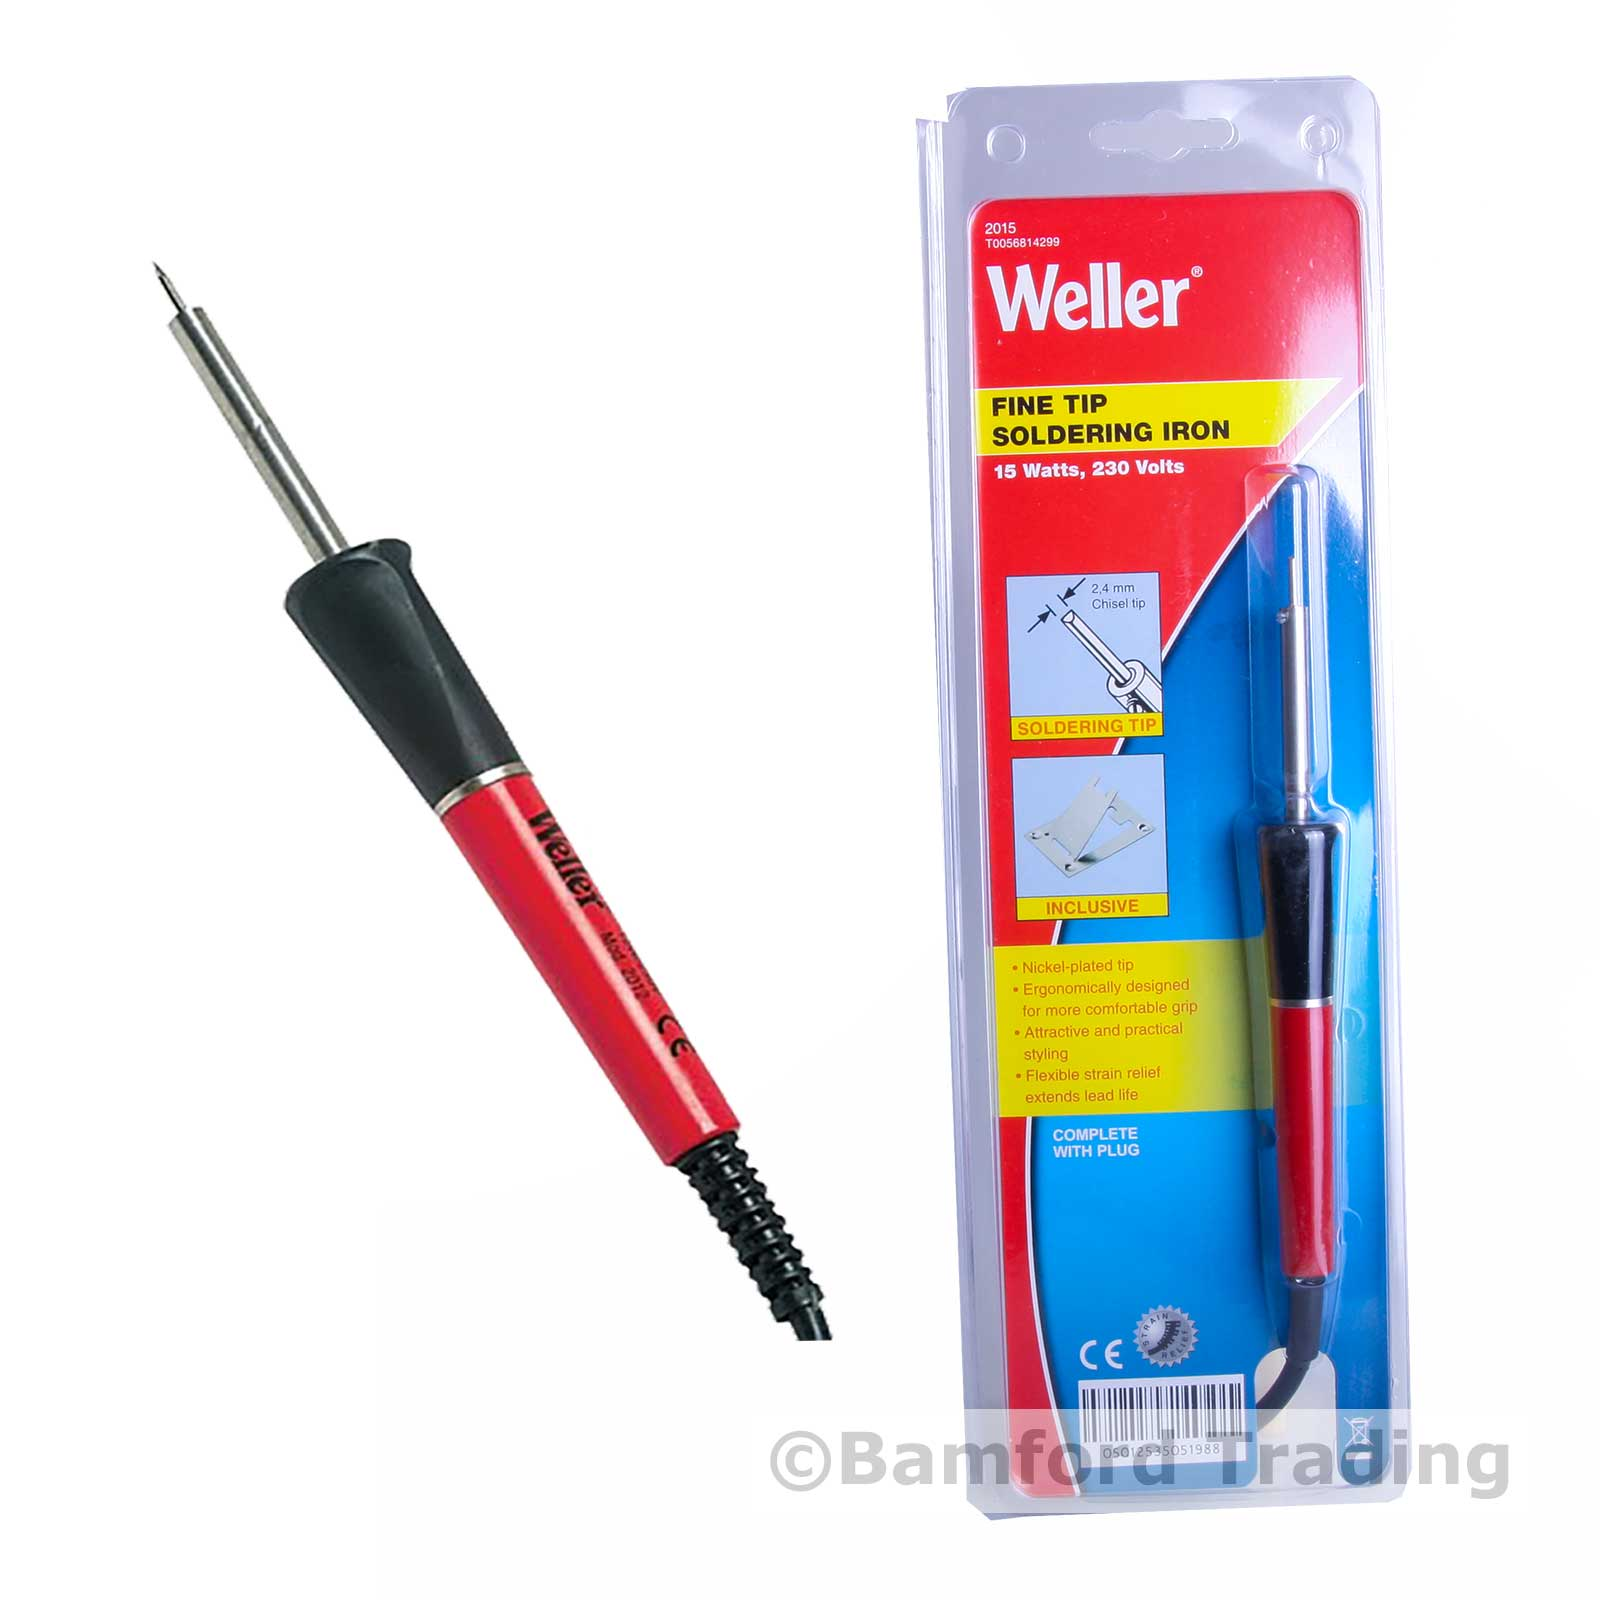 weller 2015 precision soldering iron with 2mm tip 15w 240v new miniature small ebay. Black Bedroom Furniture Sets. Home Design Ideas